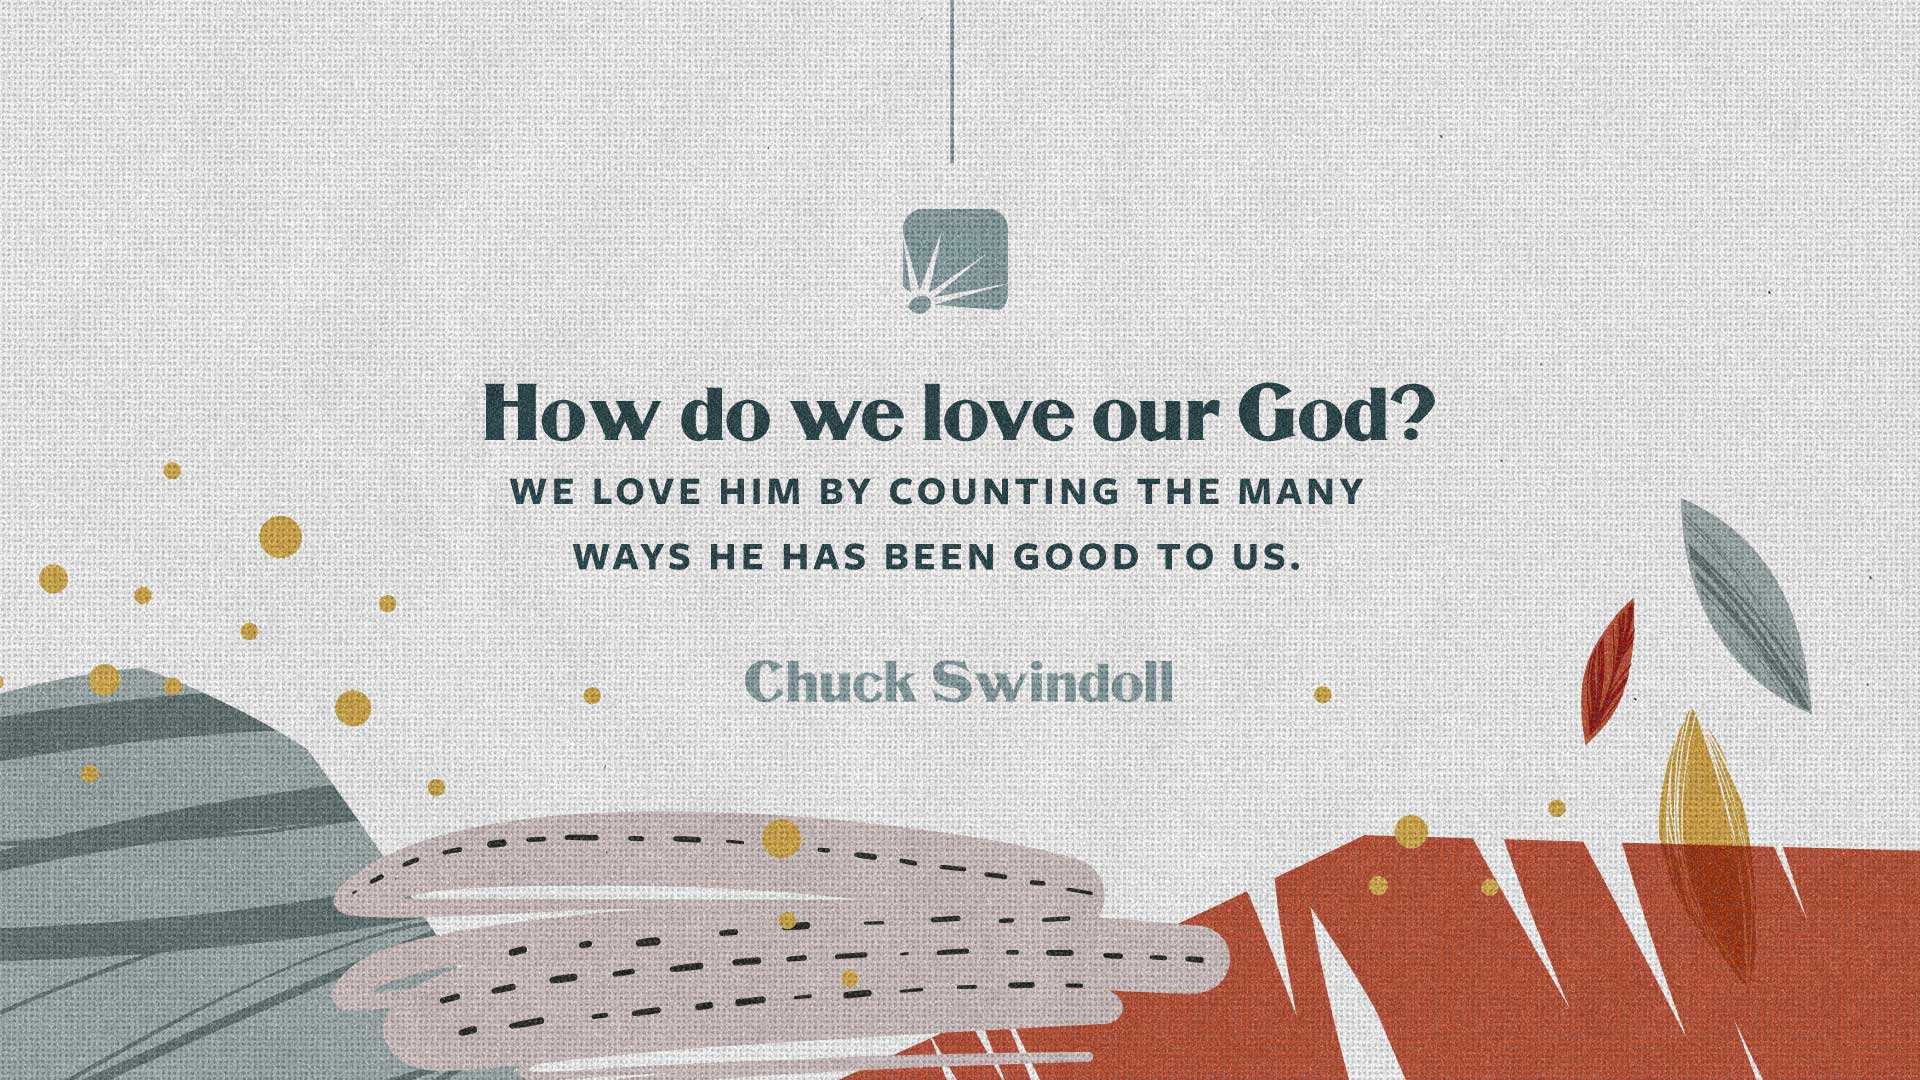 How do we love our God? We love him by counting the many ways He has been good to us.